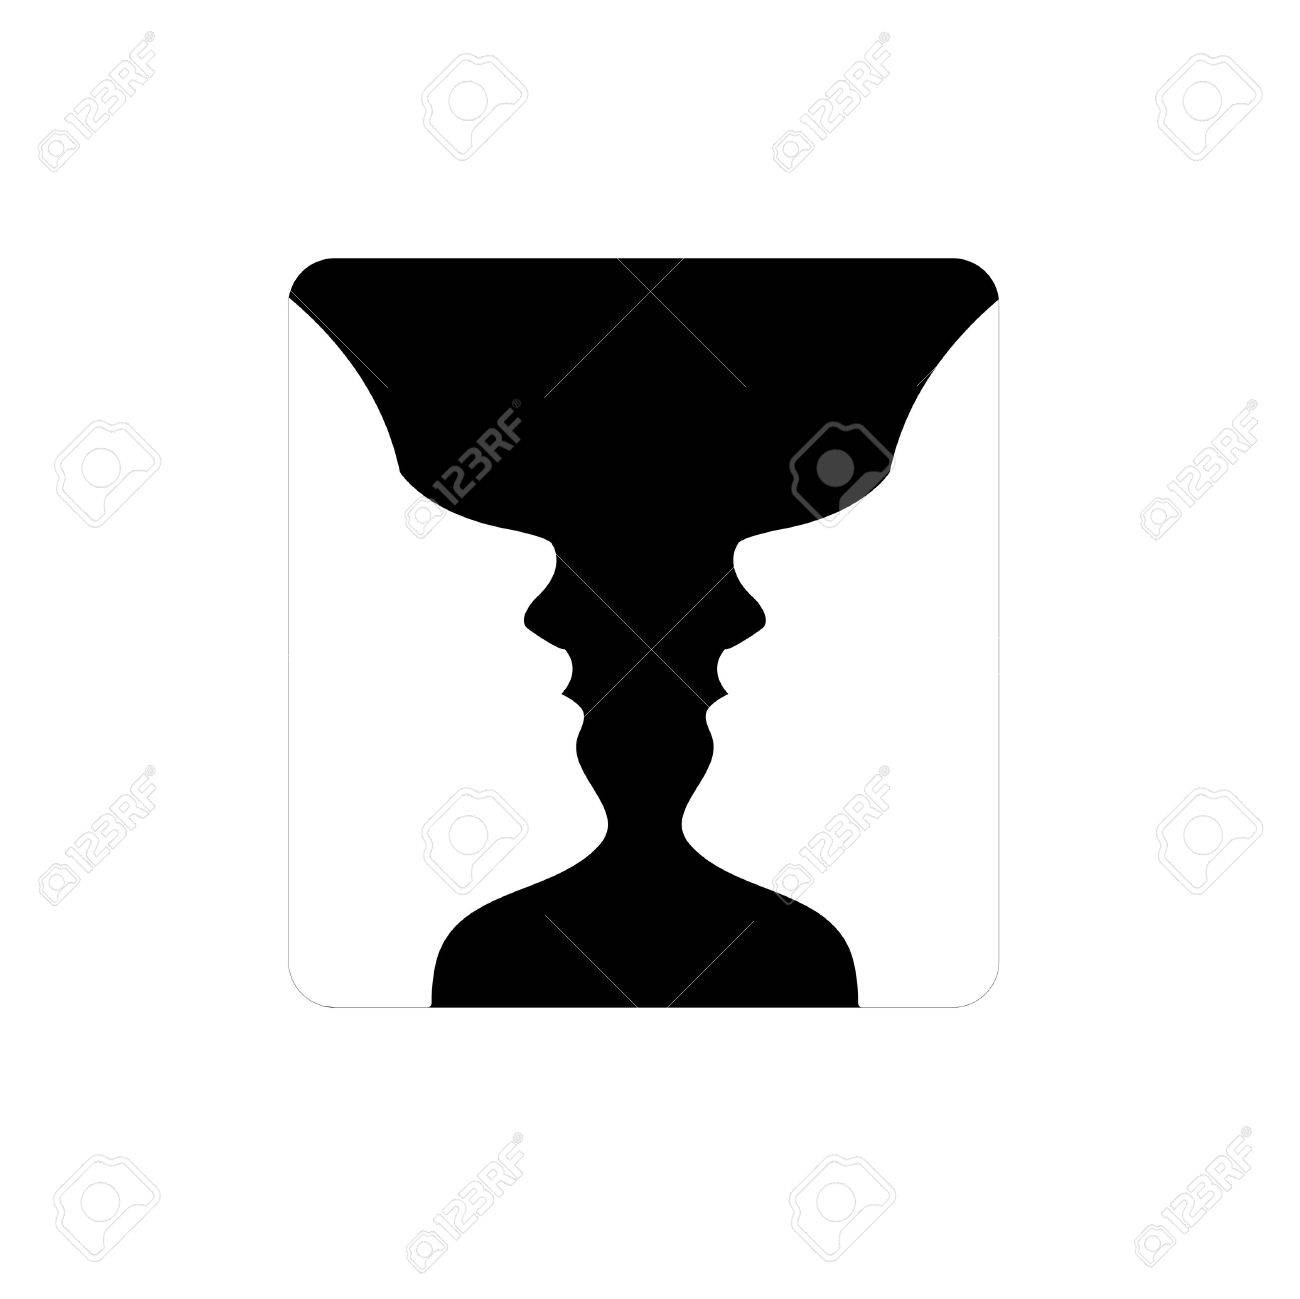 Faces or vase illusion of two faces appearing like a vase faces or vase illusion of two faces appearing like a vase stock vector 32566289 reviewsmspy